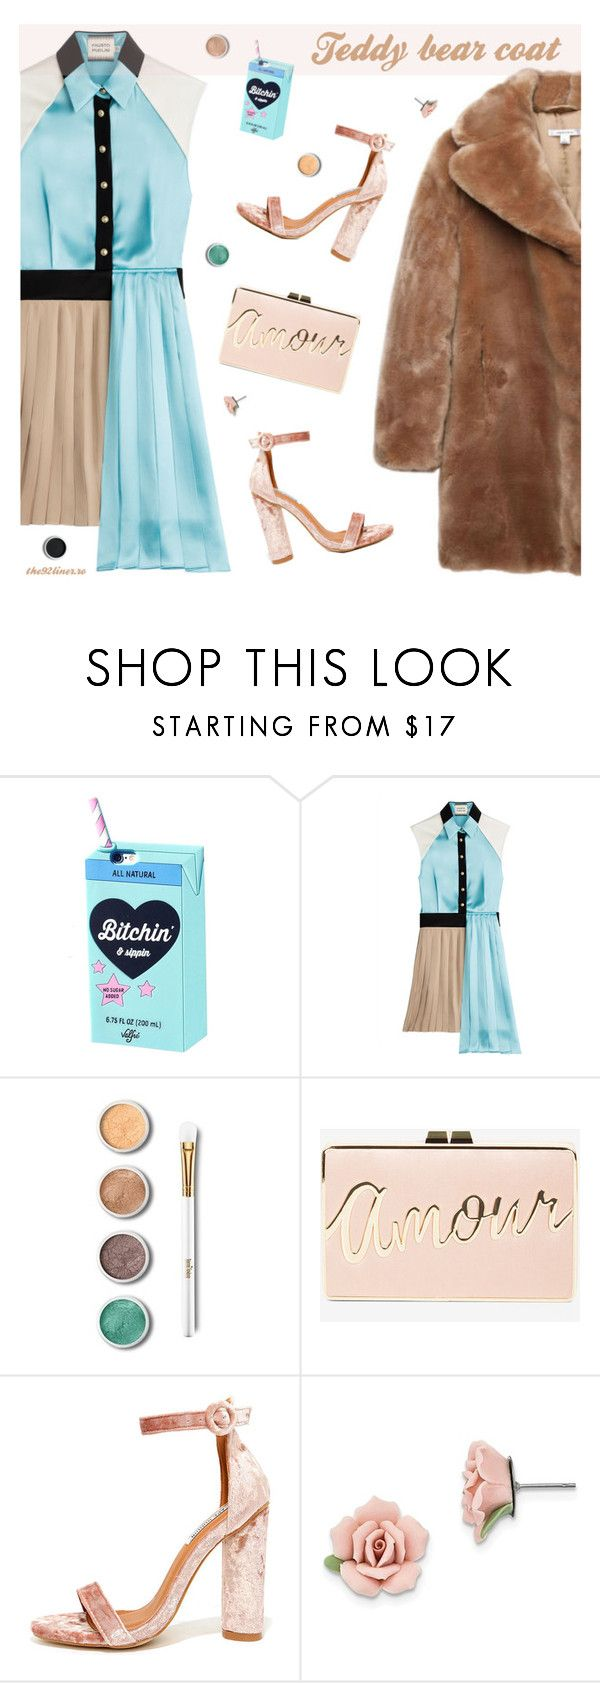 """""""Snuggle Up: Teddy Bear Coats #2"""" by the92liner ❤ liked on Polyvore featuring FAUSTO PUGLISI, Terre Mère, BCBGMAXAZRIA, Cape Robbin, 1928 and teddybearcoat"""